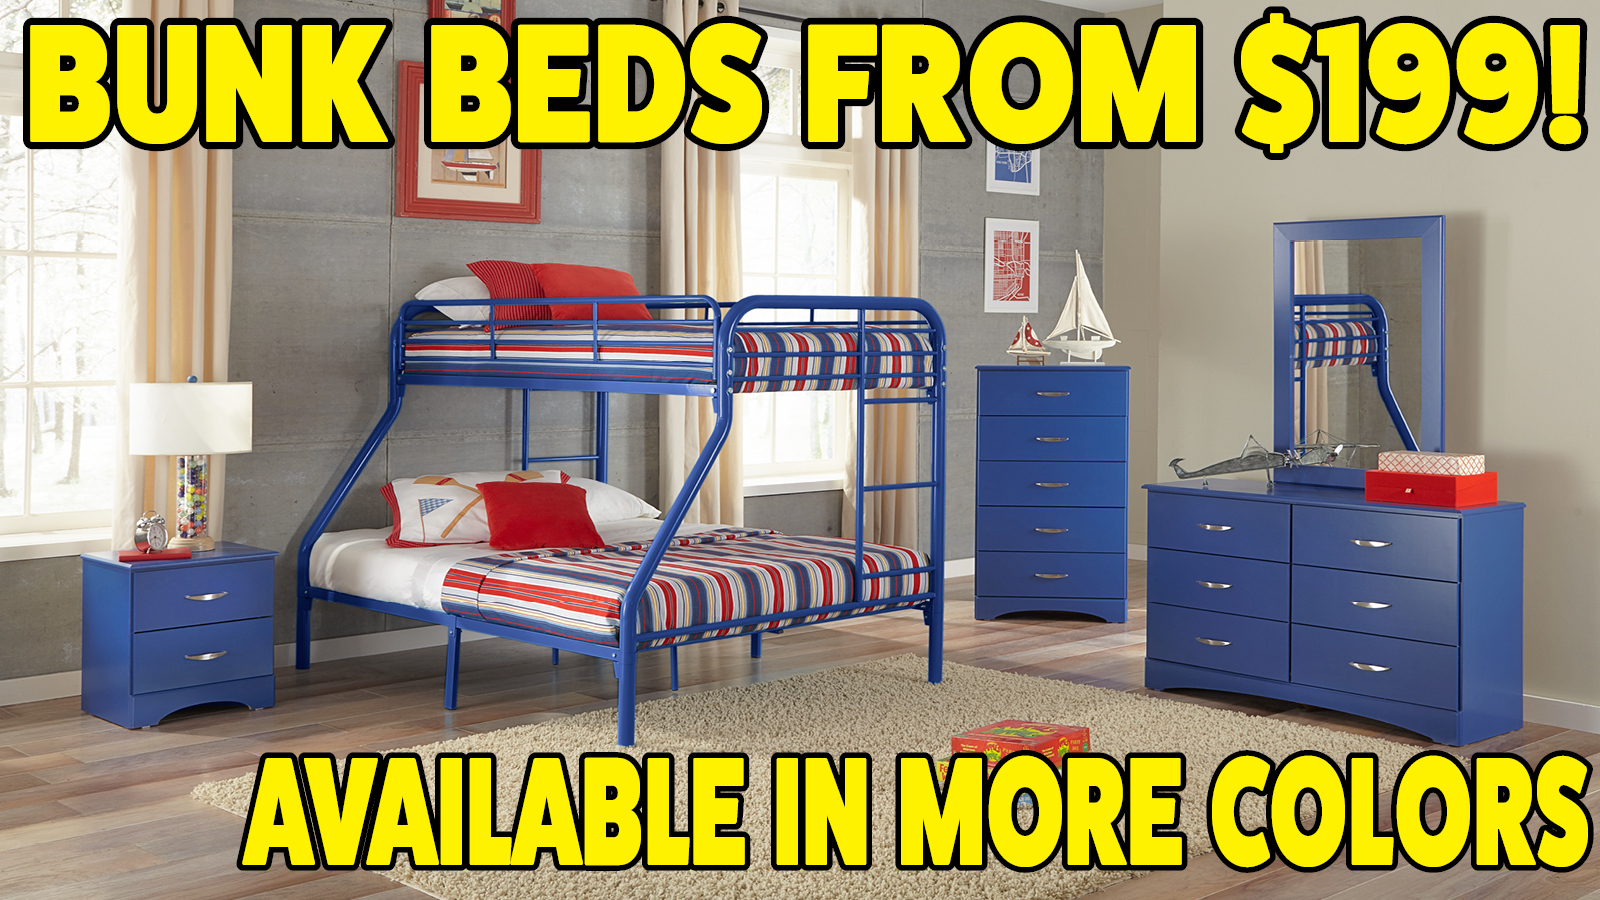 bunk-beds-from-199.jpg